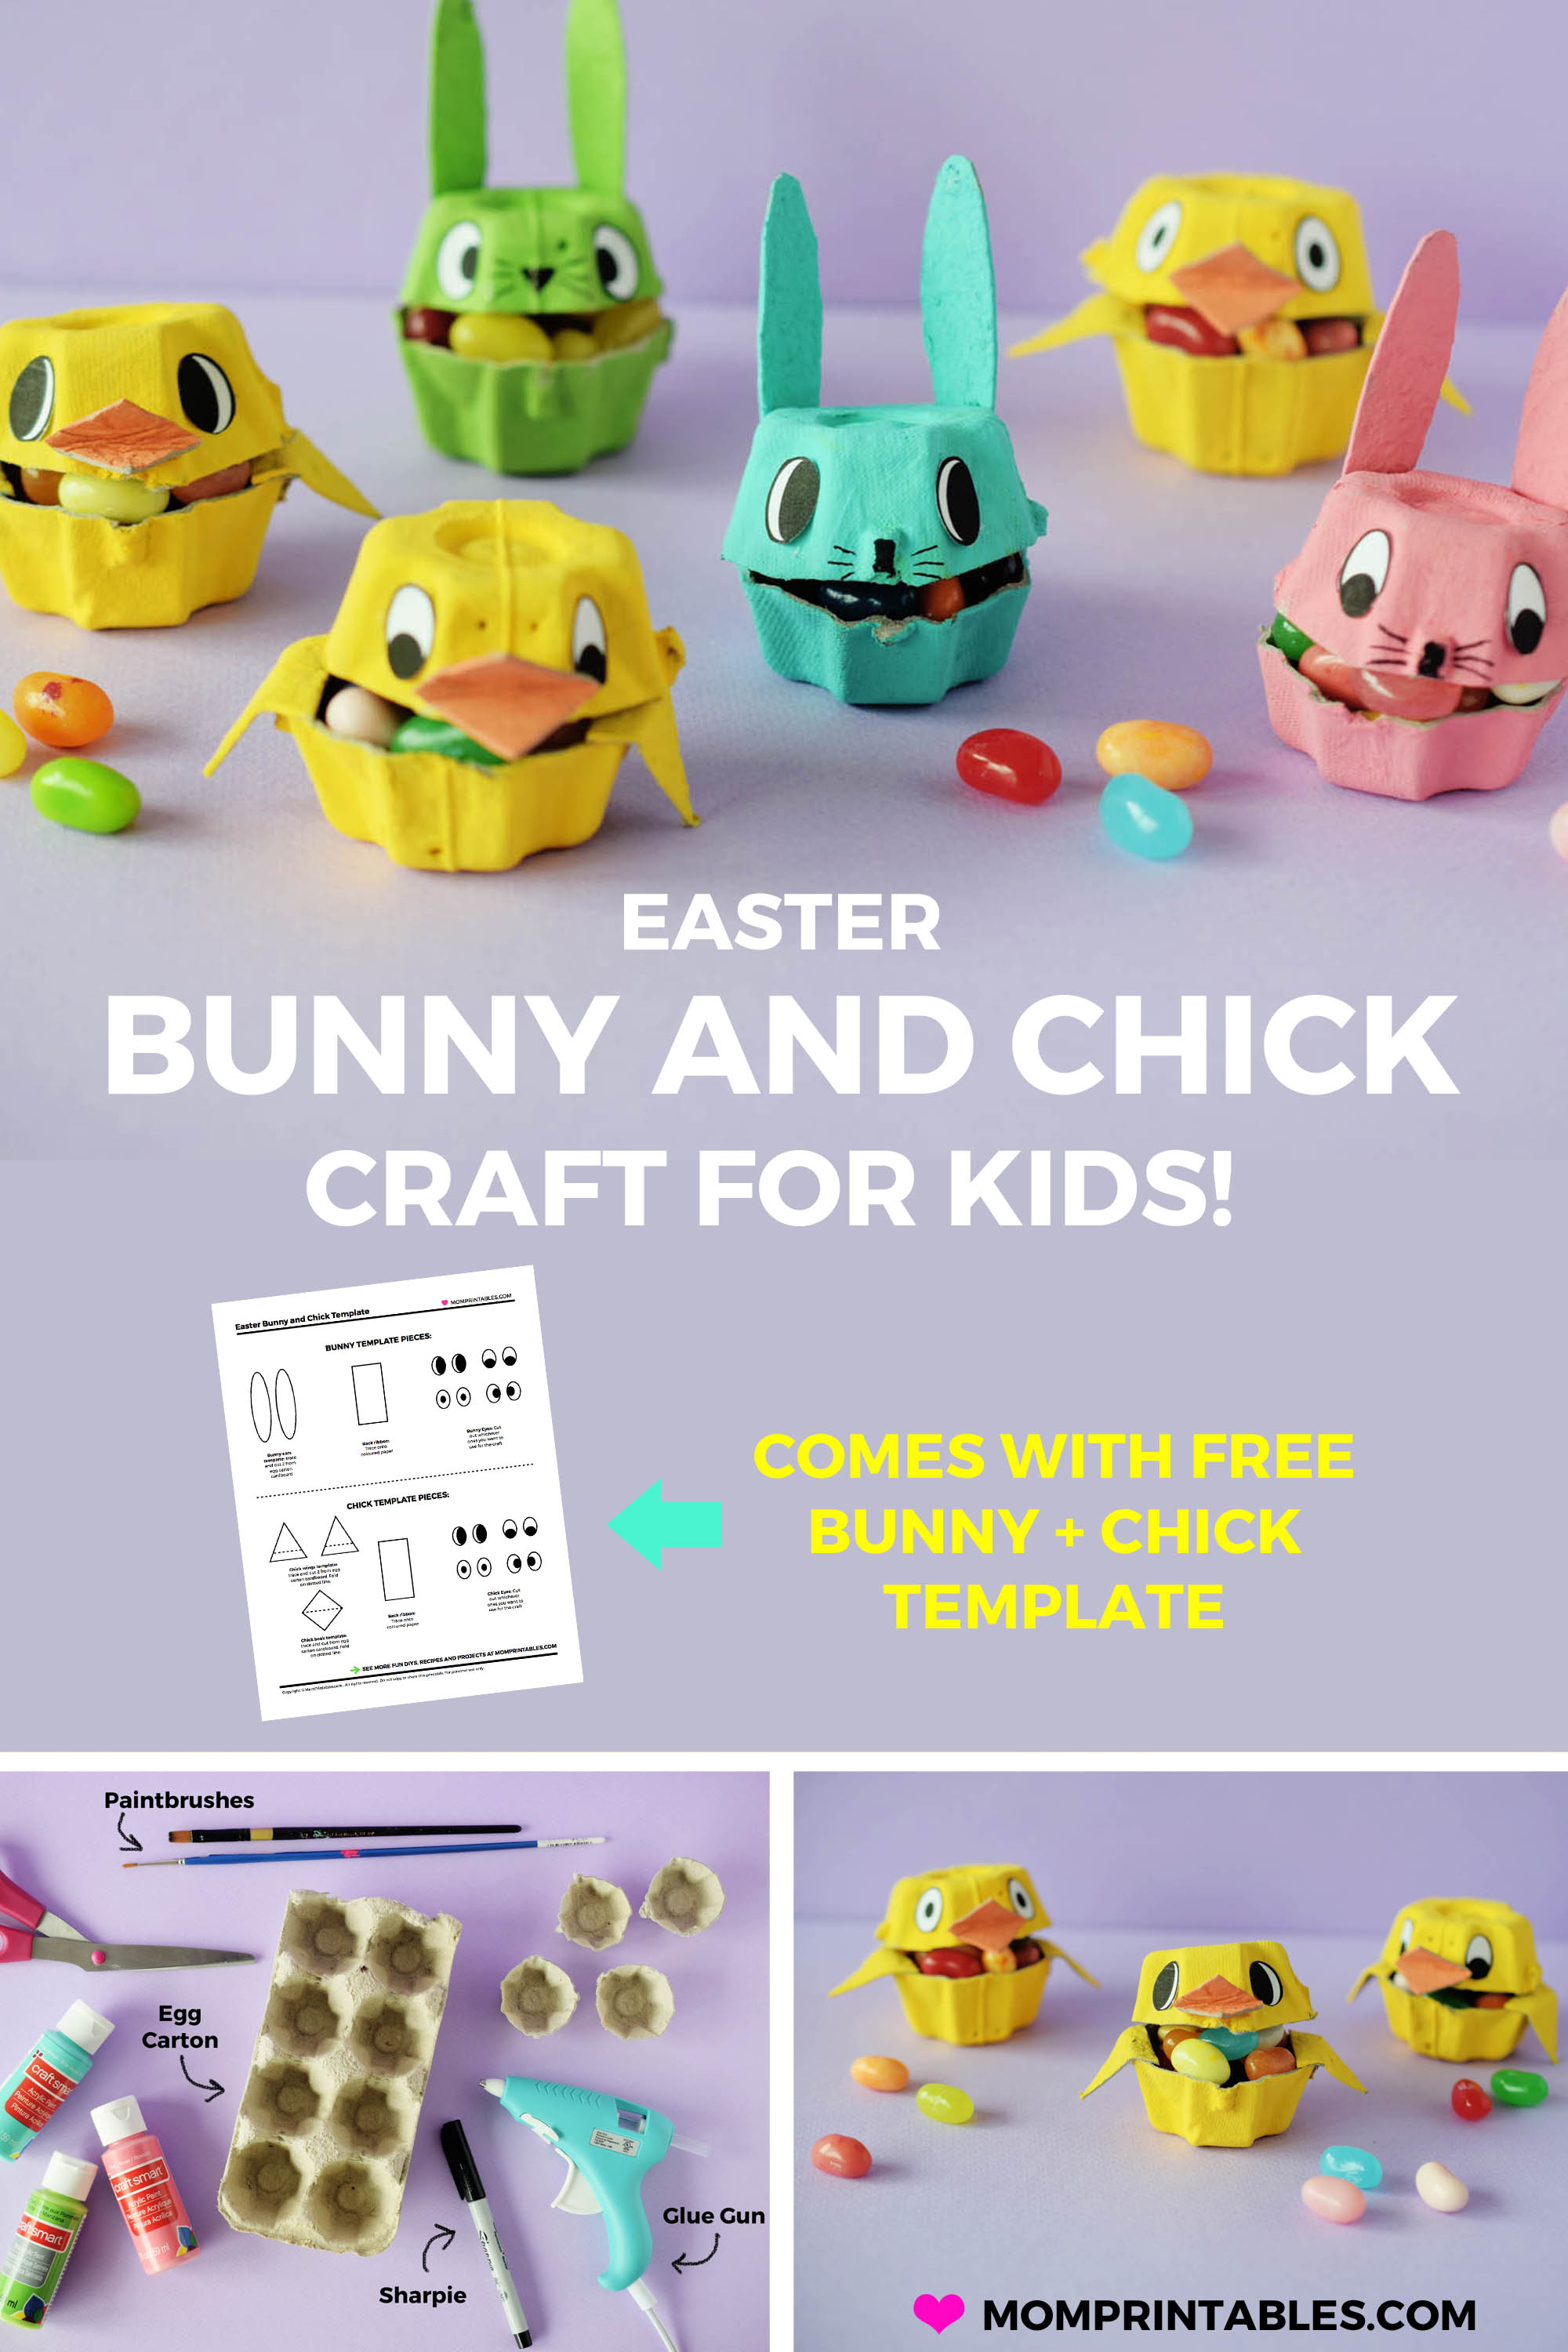 Easter Bunny and Chick Craft made from egg cartons for kids | preschool | paper | DIY | Easy | free printable | for kindergarten | school | cotton balls | rabbit | fun | jelly beans | pom moms | paint | creative | girls | so cute | for toddlers | ideas | decoration | projects | ducks | spring | how to make | birds | #easter #spring #Springcraft #kidscraft #Eastercraft #bunnycraft #chickcraft